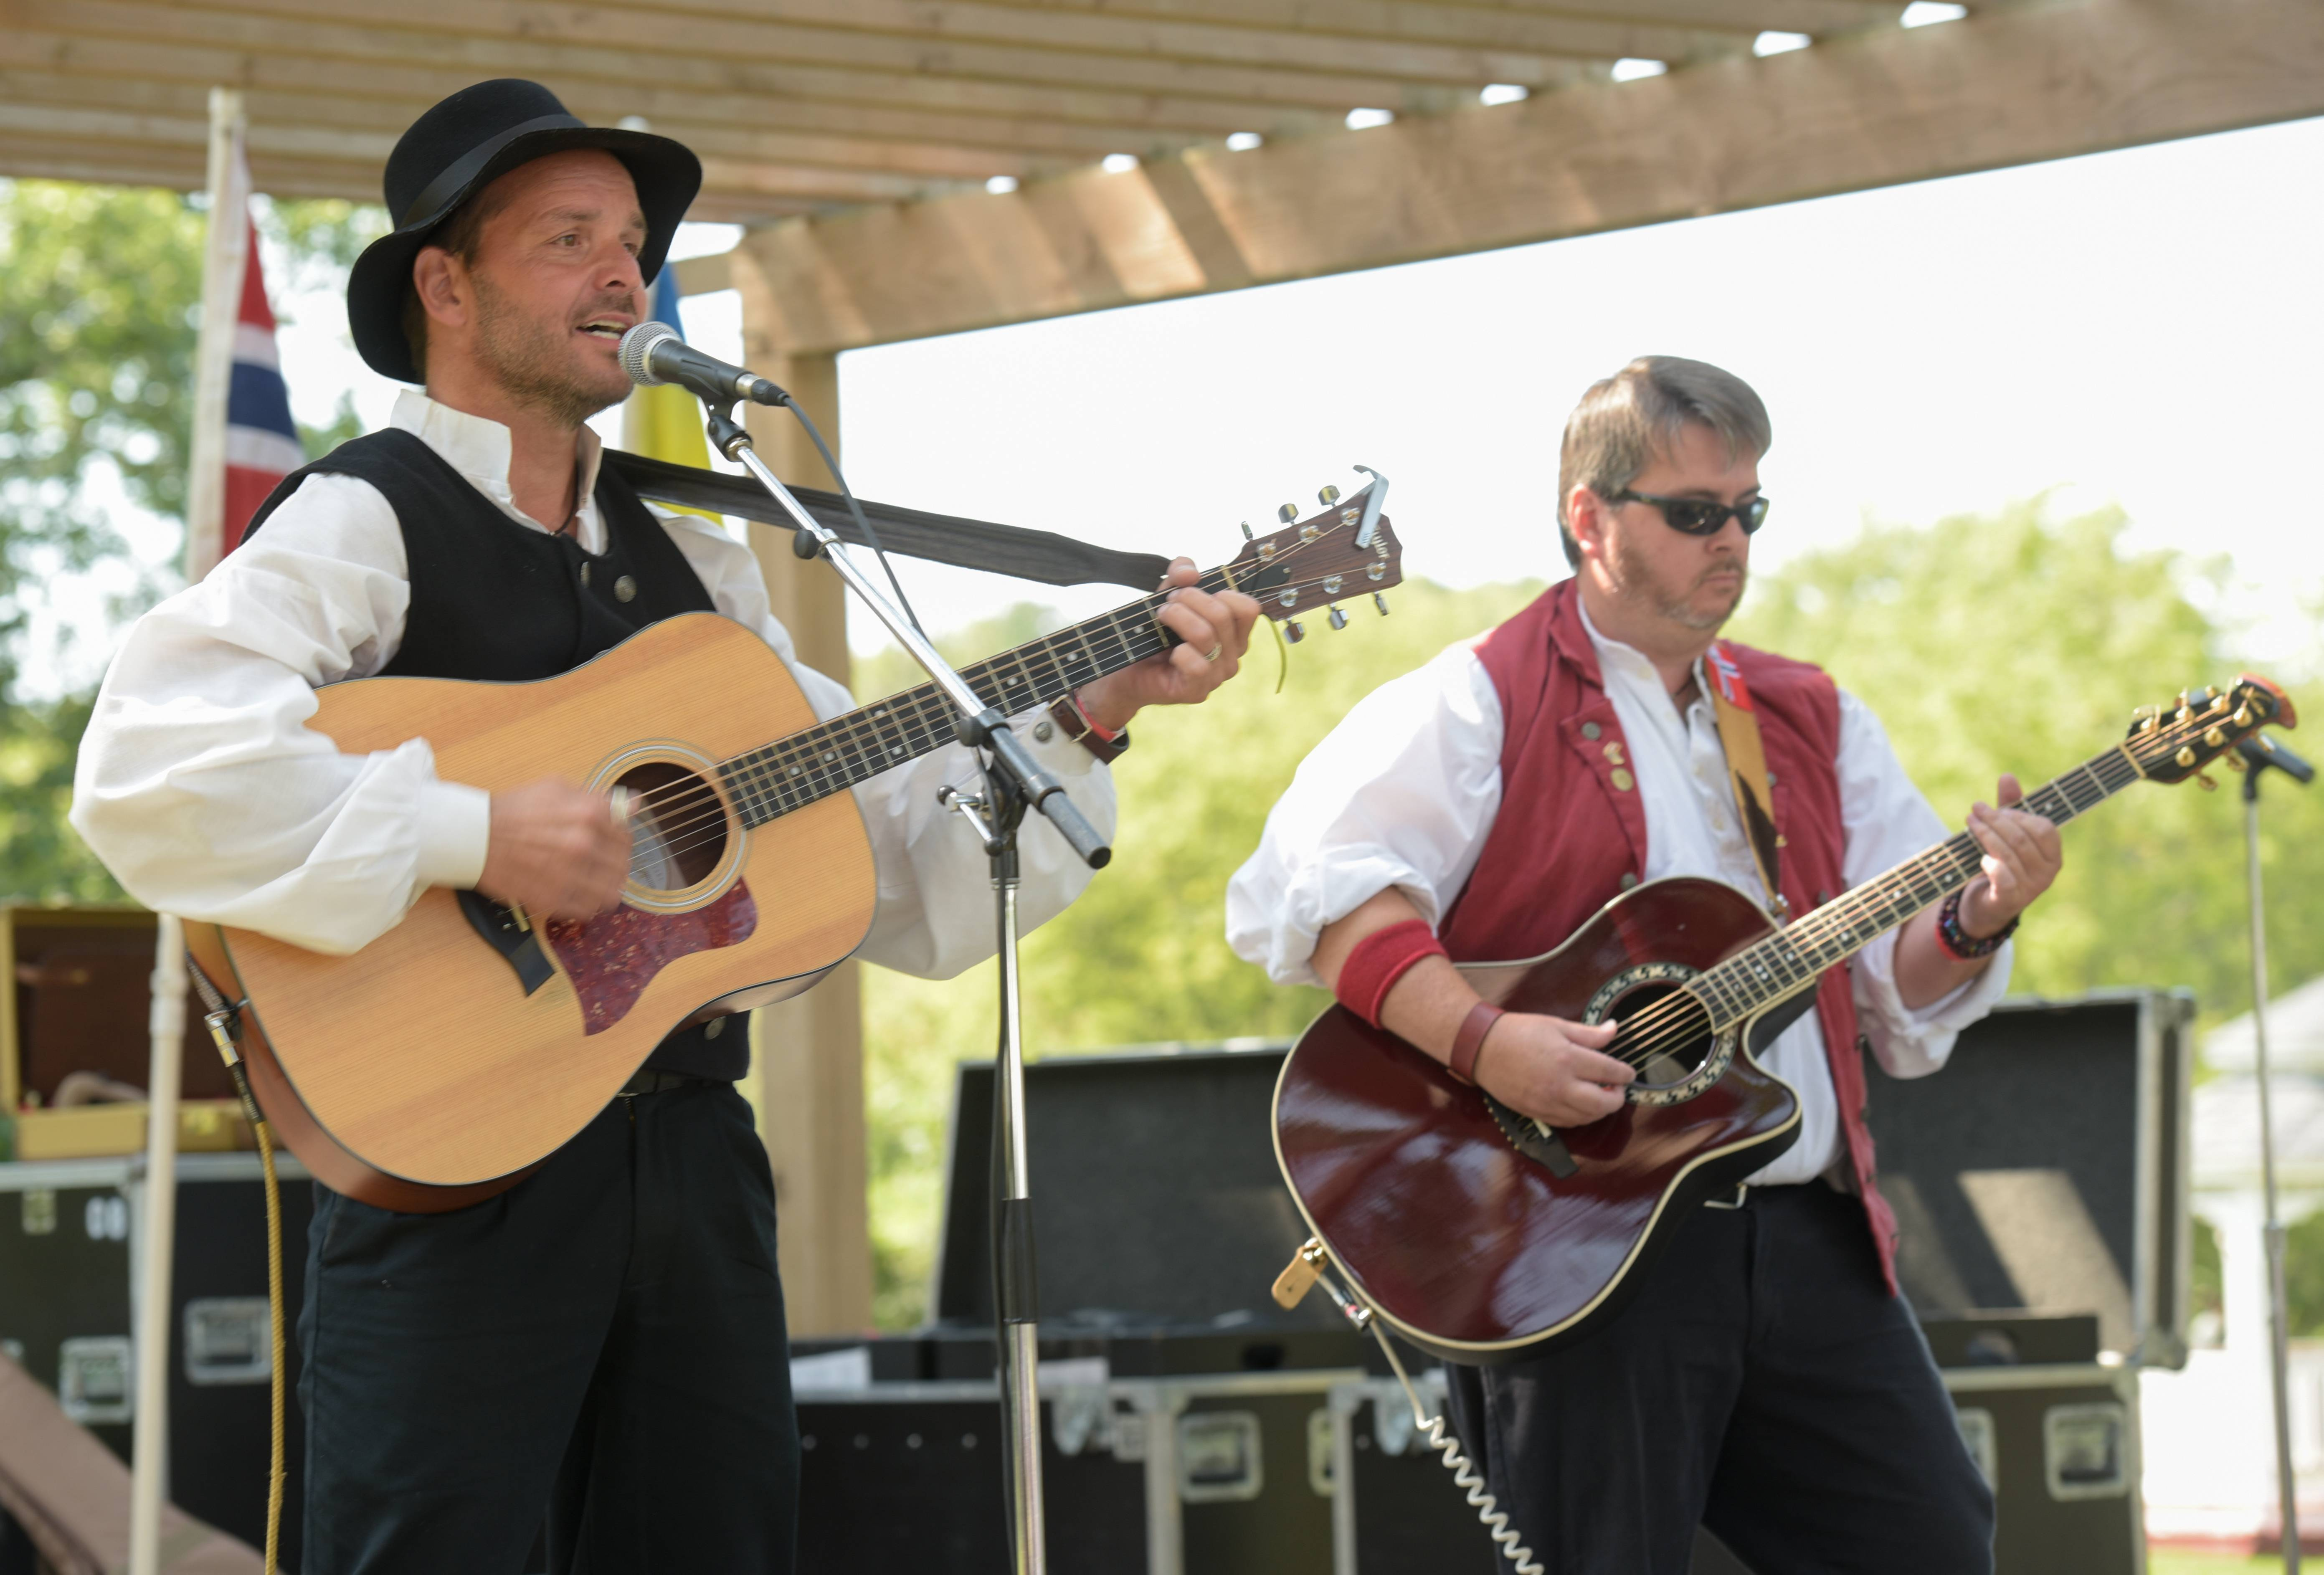 The group Kyle and Dave performs at the 38th Annual Scandinavian Day Festival Sunday in South Elgin.